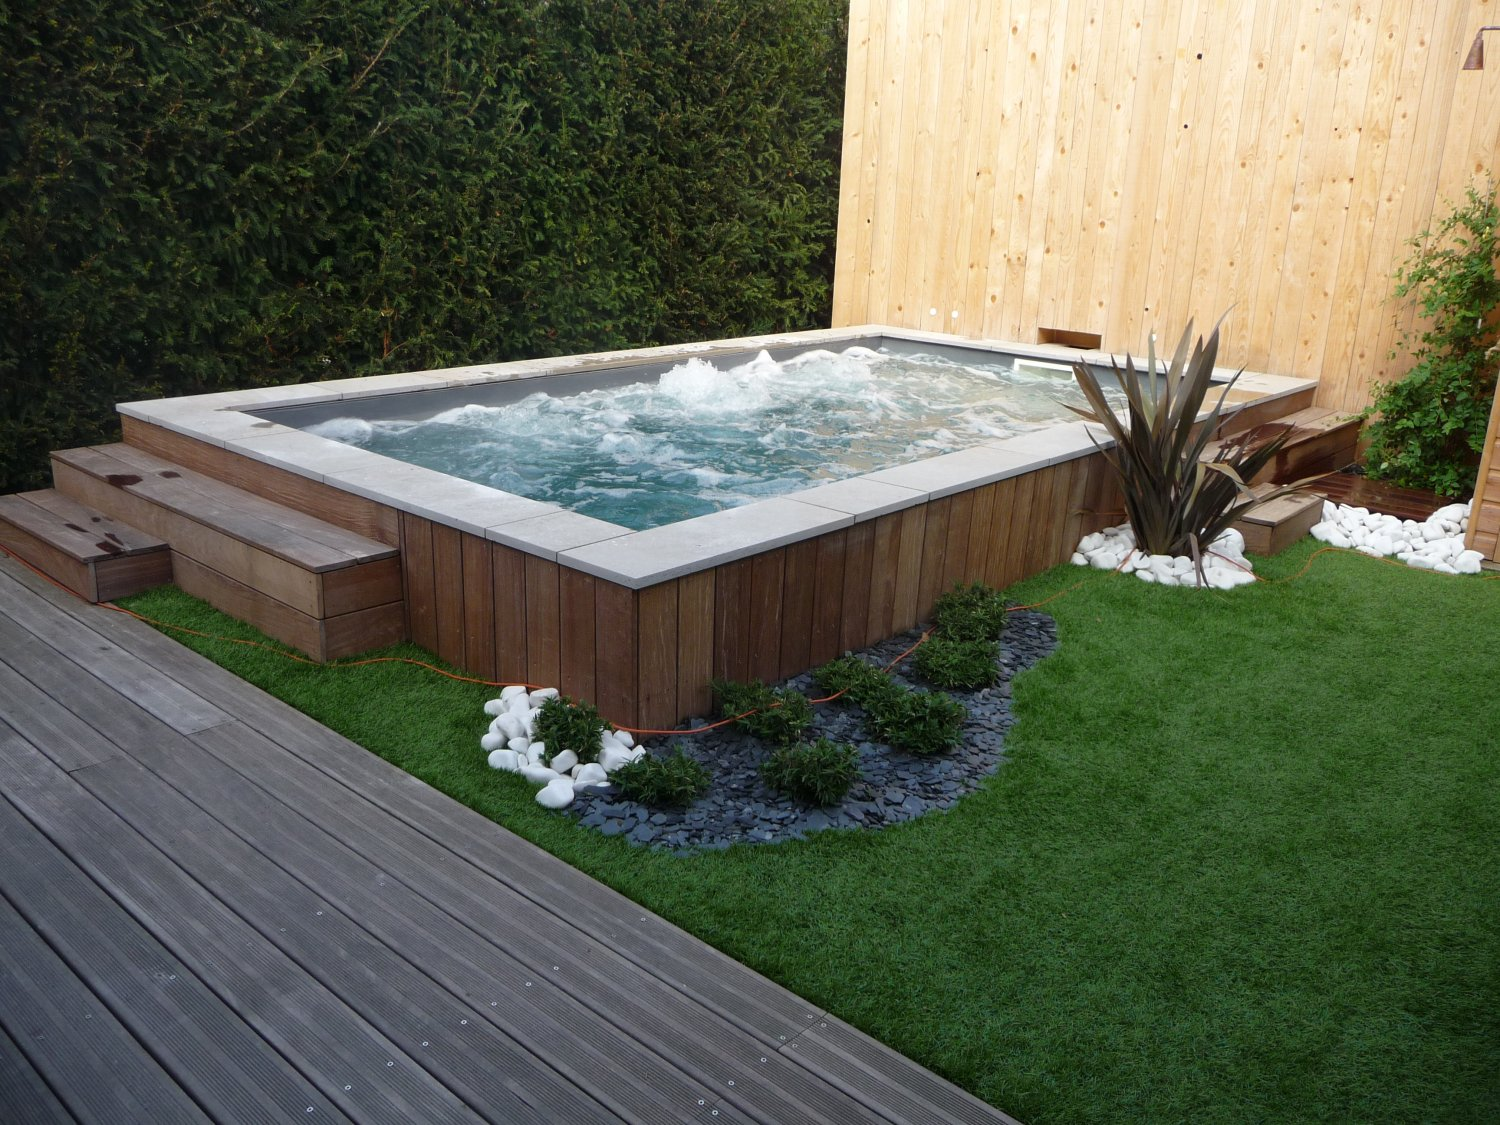 Tout savoir sur la piscine hors sol ze news for Amenagement piscine hors sol photo